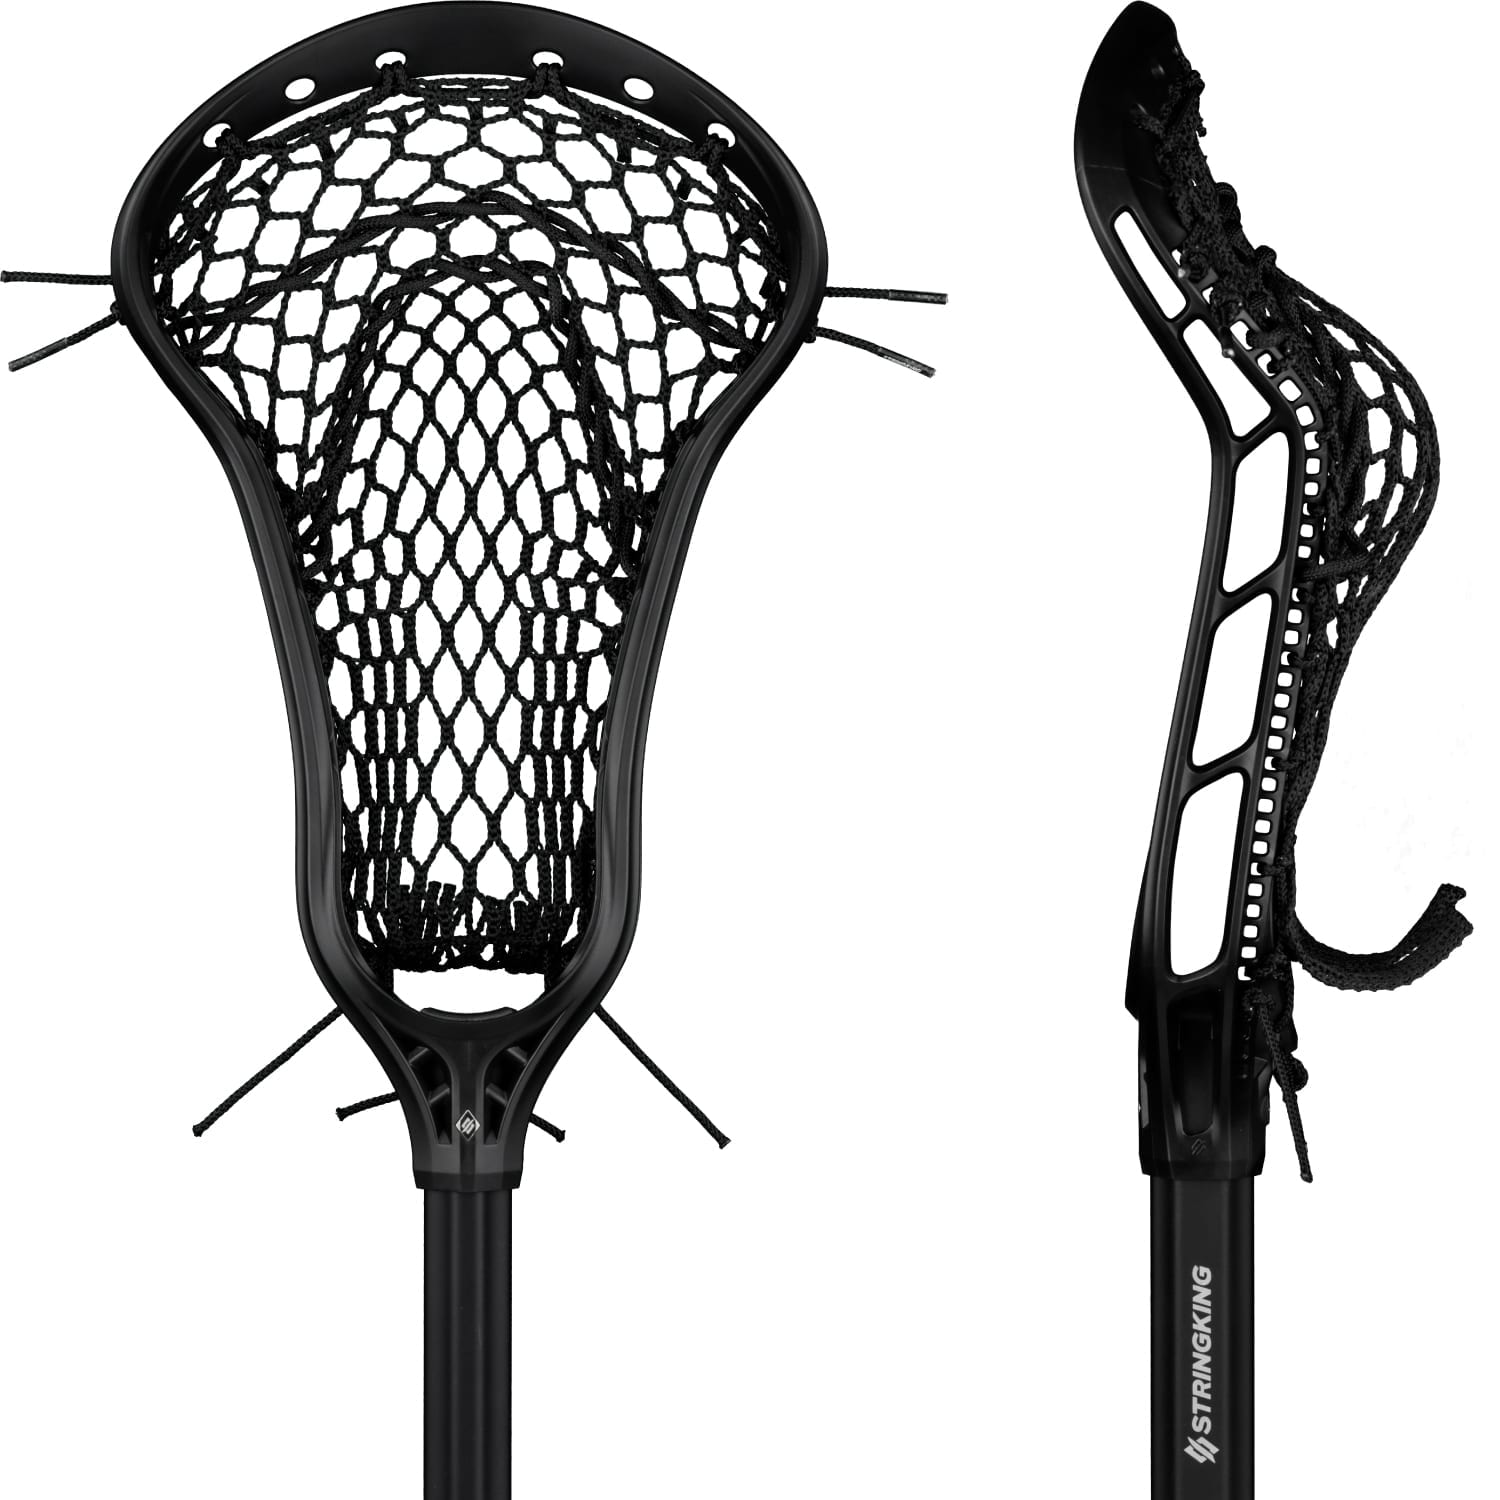 StringKing-Womens-Complete-2-Offense-Front-Side-Strung-Black1500.jpg